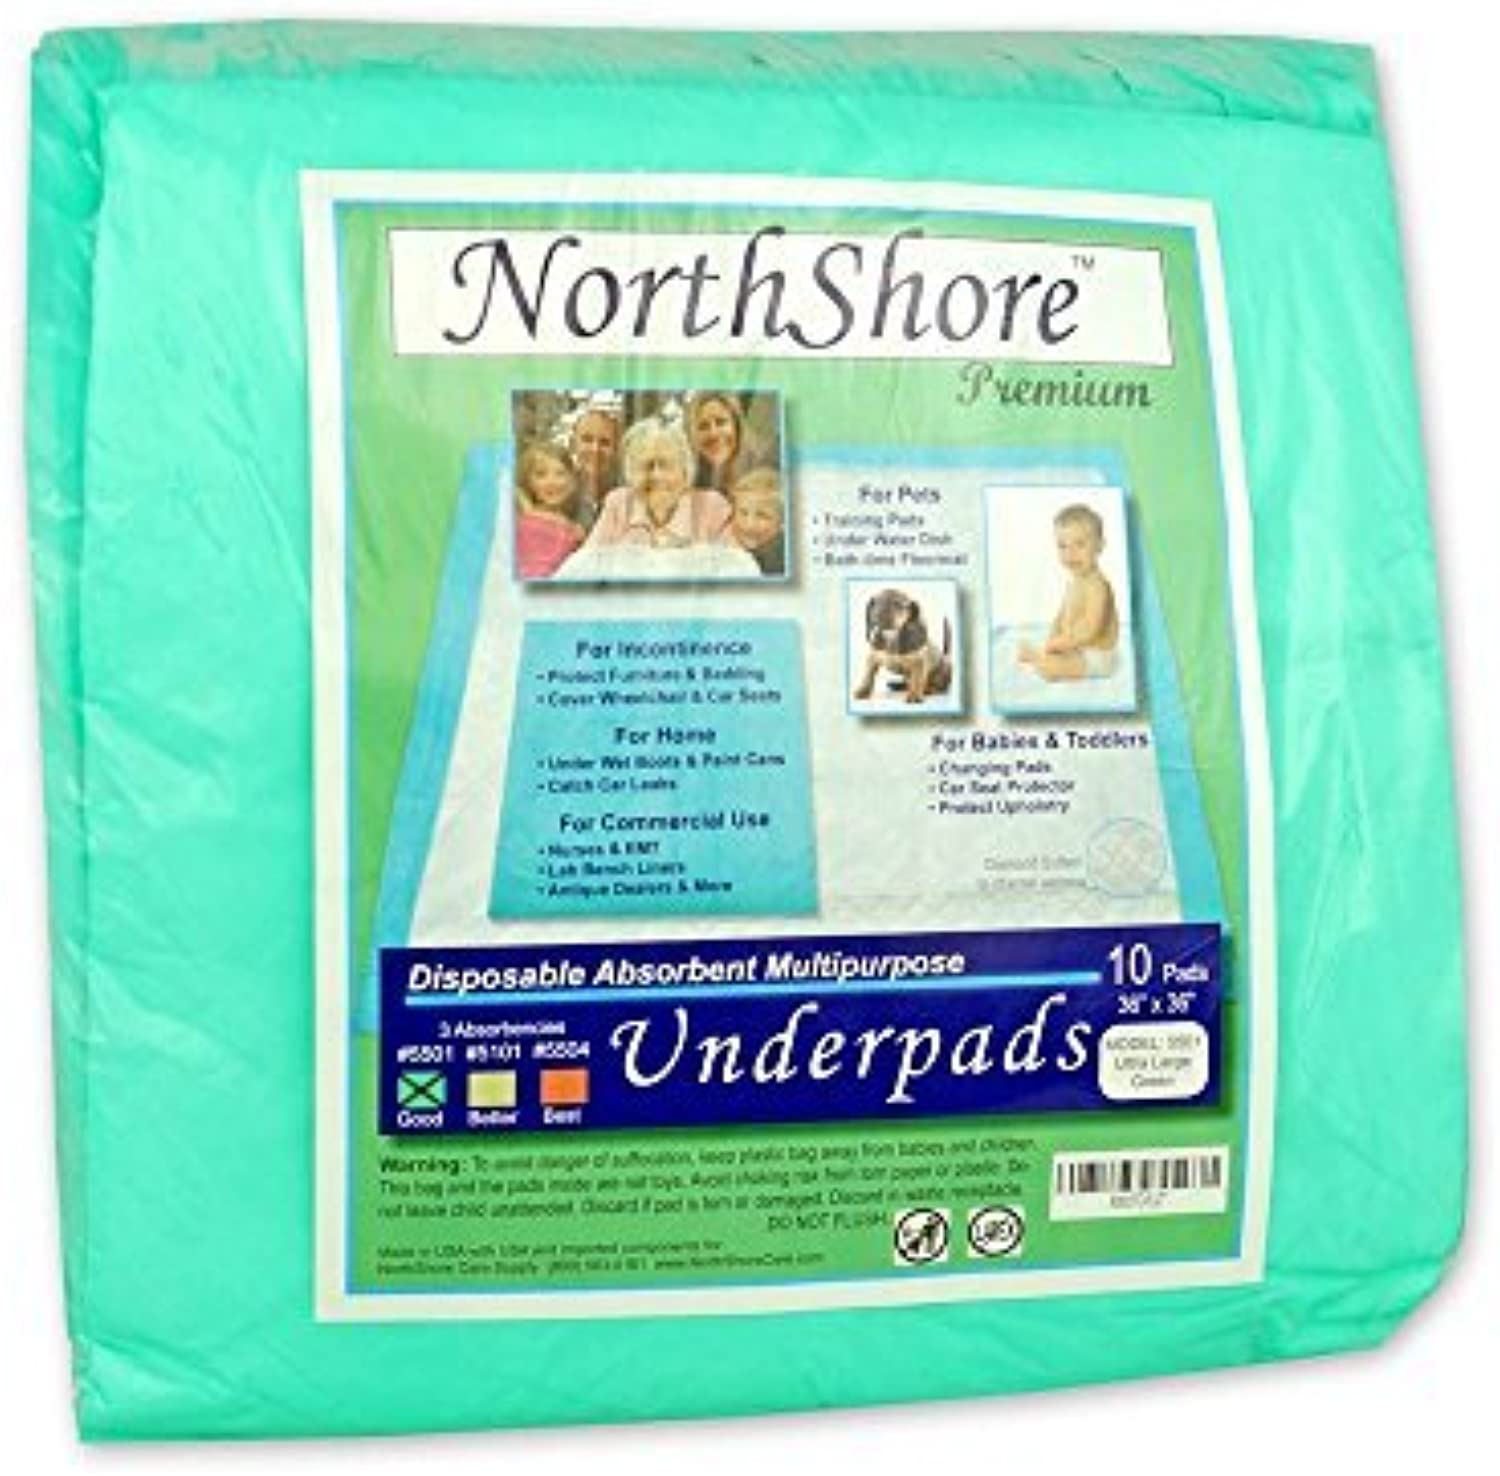 Northshore Premium, 36 x 36, 40 oz, Puppy Pads, Green, Ultra Large, Pack 10